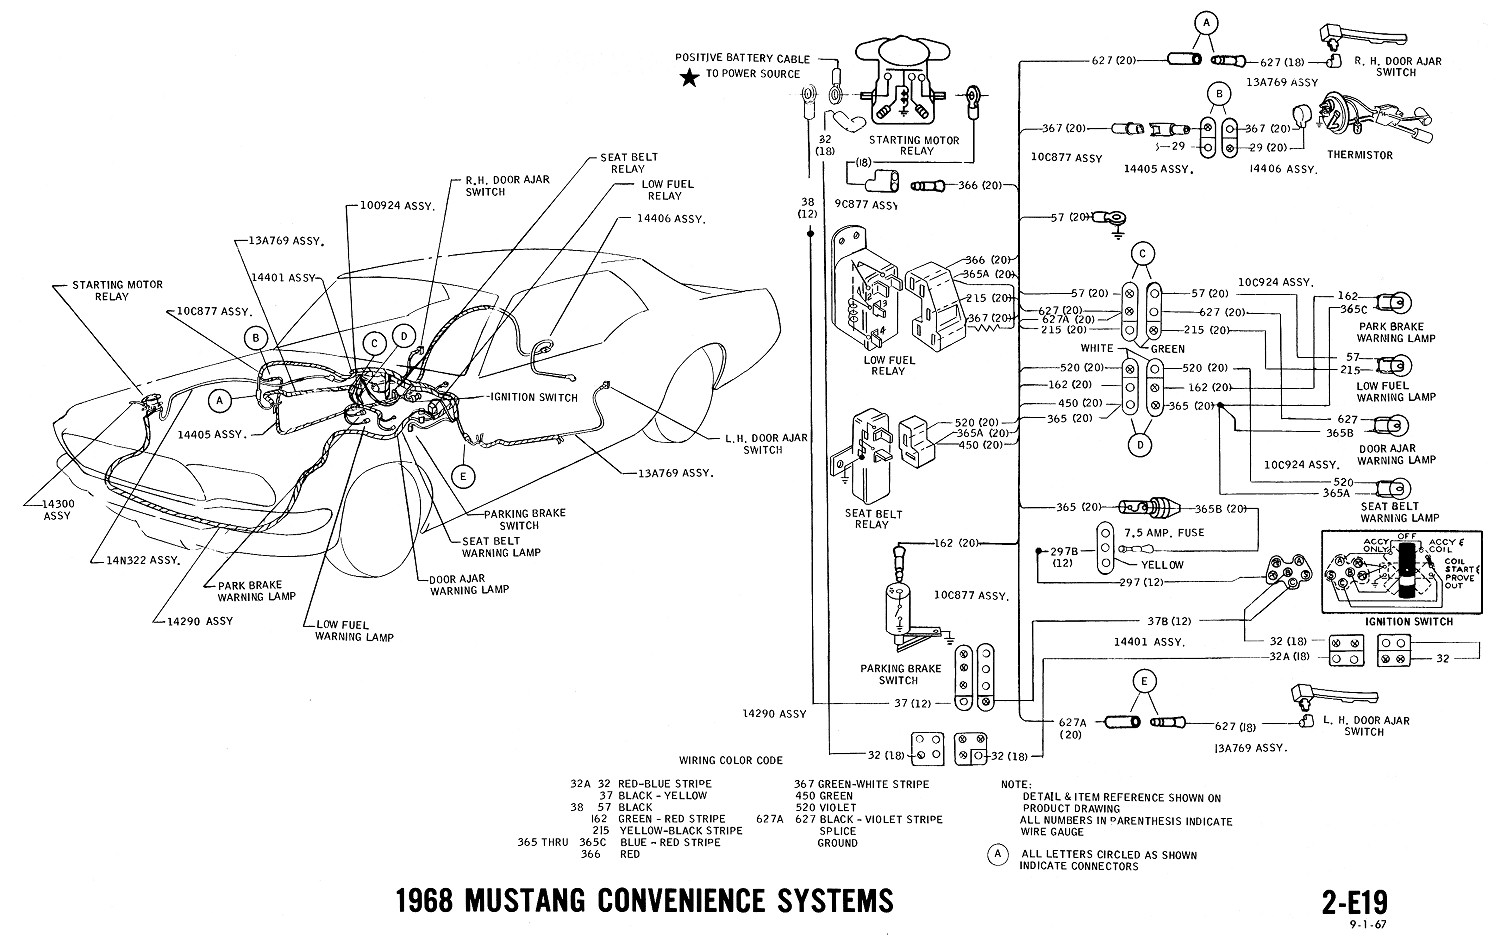 Wiring Diagram For A 1968 Ford Mustang - Wiring Diagram All Data on ford starter wiring diagram, 1966 ford backup light wiring diagram, 1966 ford ignition switch wiring diagram, 1966 ford f-250 wiring diagram, ford 3 wire alternator diagram, 1966 mustang color wiring diagram, 1966 ford truck wiring diagram, 1966 ford charging system diagram, ford truck alternator diagram, 1966 mustang horn wiring diagram, 1966 ford thunderbird wiring diagram, 66 mustang ignition wiring diagram, 1966 mustang engine wiring diagram, 67 mustang ignition wiring diagram, 1966 ford mustang alternator, ford one wire alternator diagram, 1996 mustang wiring diagram, 1966 ford galaxie wiring-diagram, 1966 mustang dash wiring diagram, 1966 ford fuel gauge diagram,